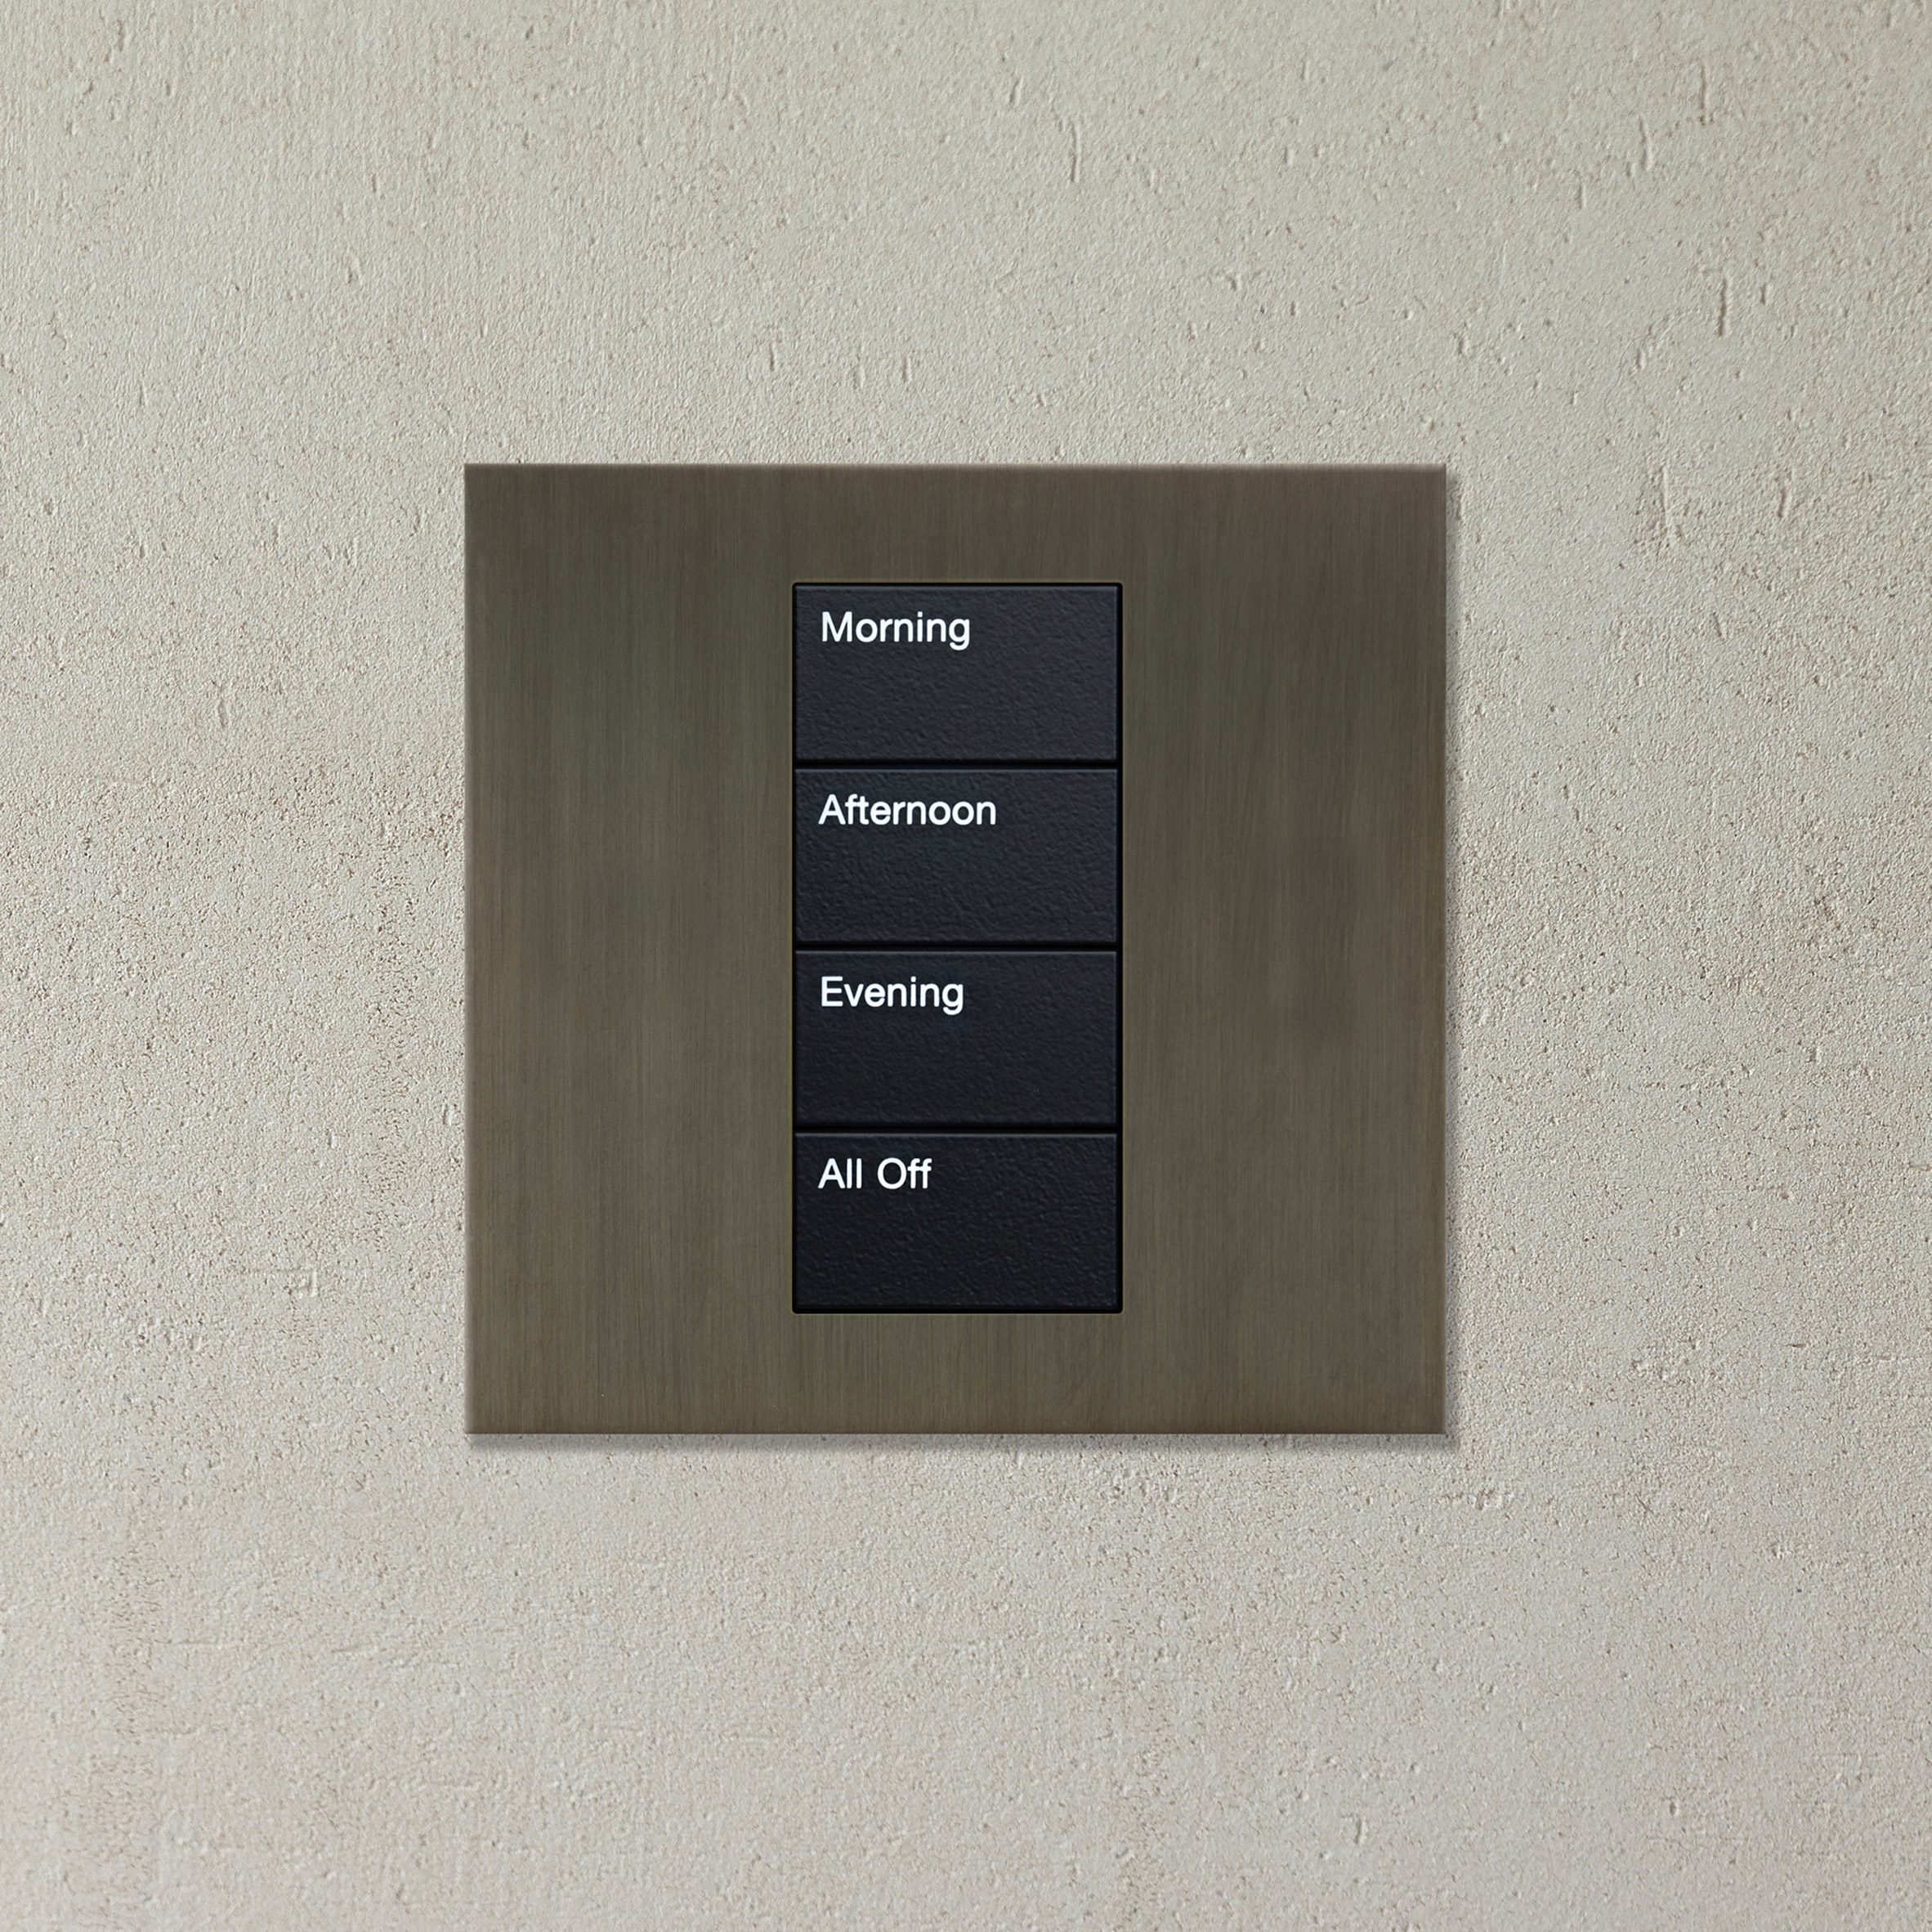 A metallic lighting control with four switches: morning, afternoon, evening and all off